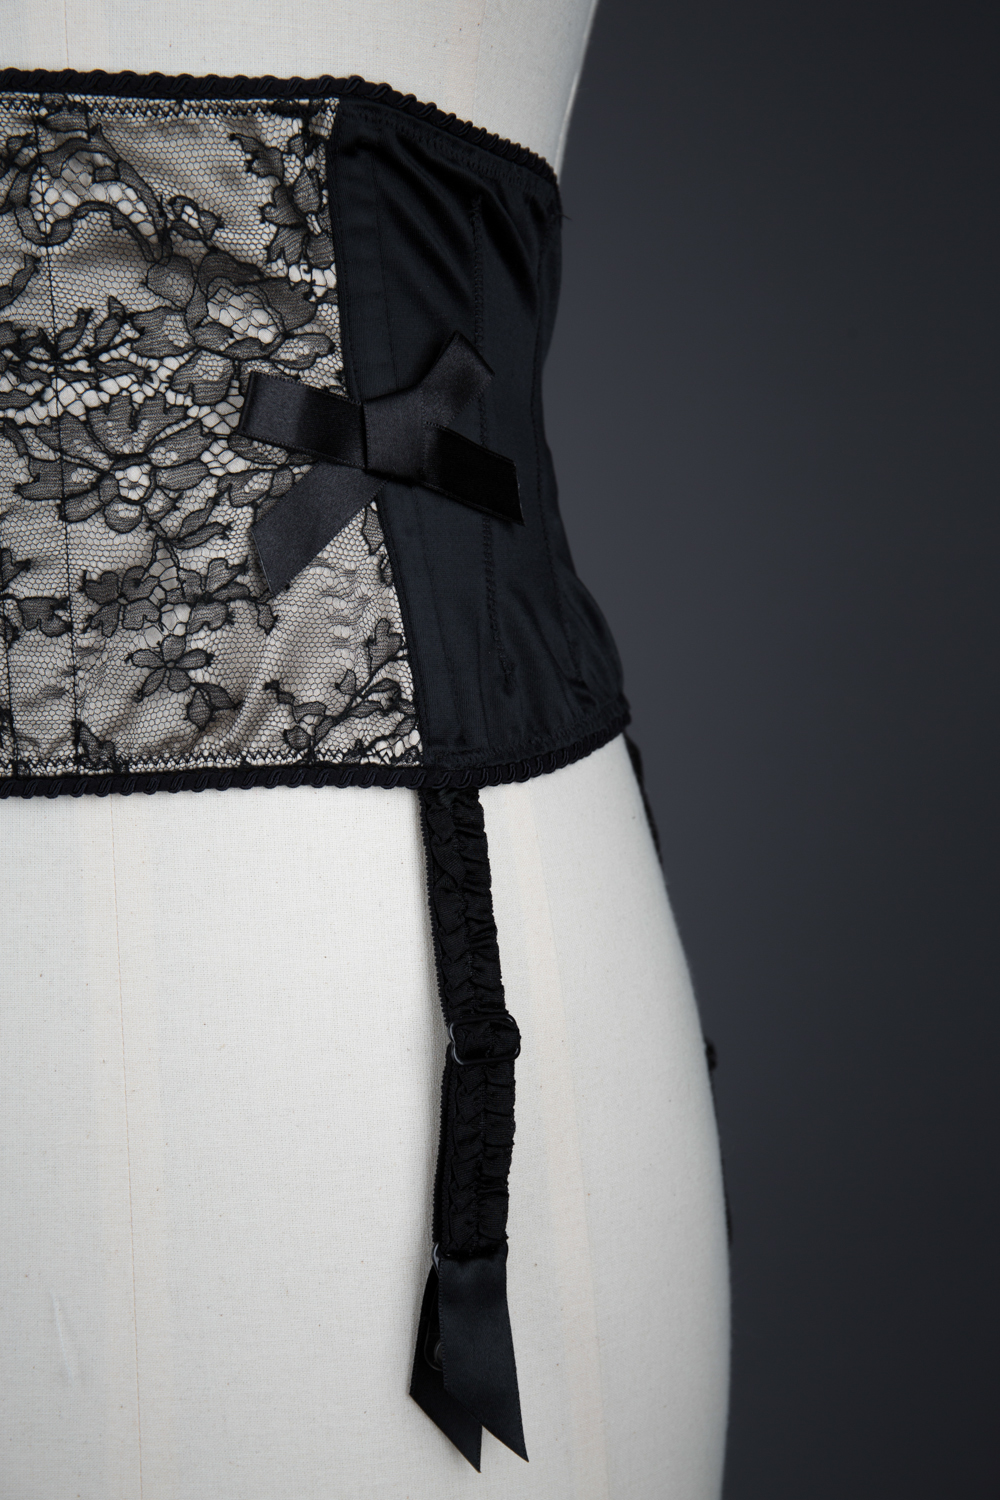 Leavers Lace & Stretch Satin Waist Cincher By Cadolle, c. 2000s, France. The Underpinnings Museum. Photography by Tigz Rice.